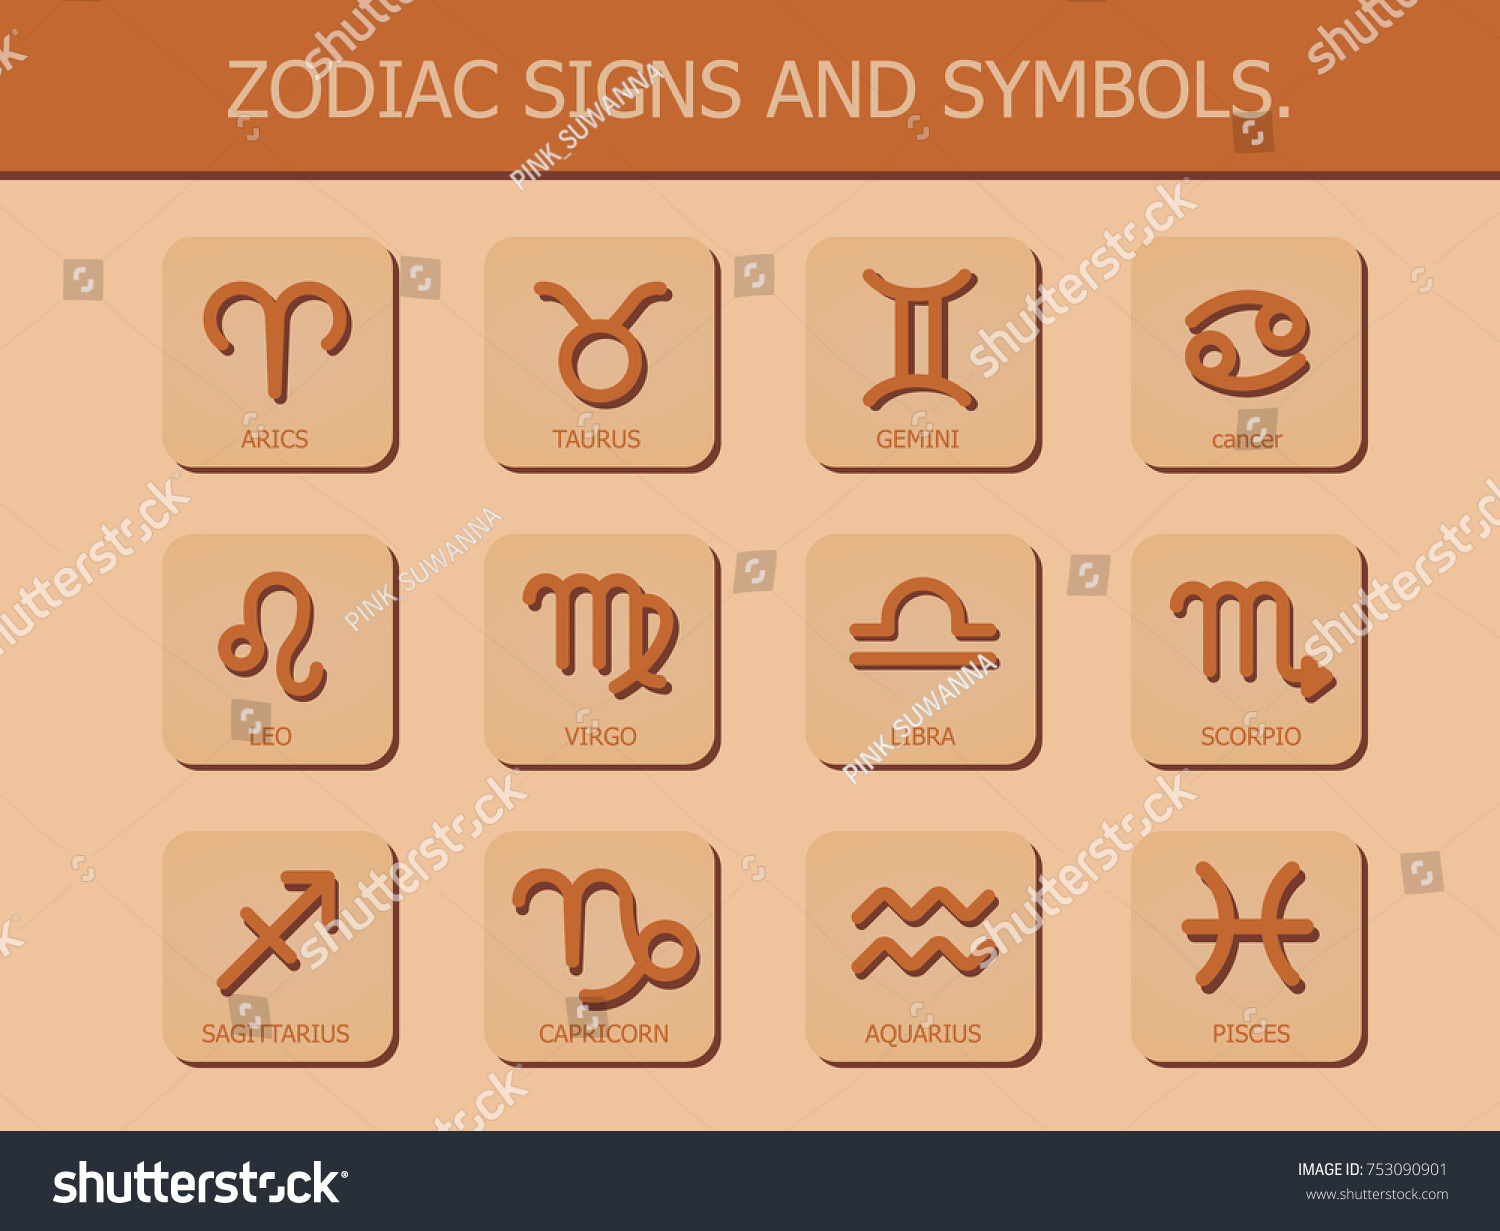 Zodiac signs symbols horoscope astrology on stock vector 753090901 zodiac signs and symbols horoscope and astrology on brown background vector illustration biocorpaavc